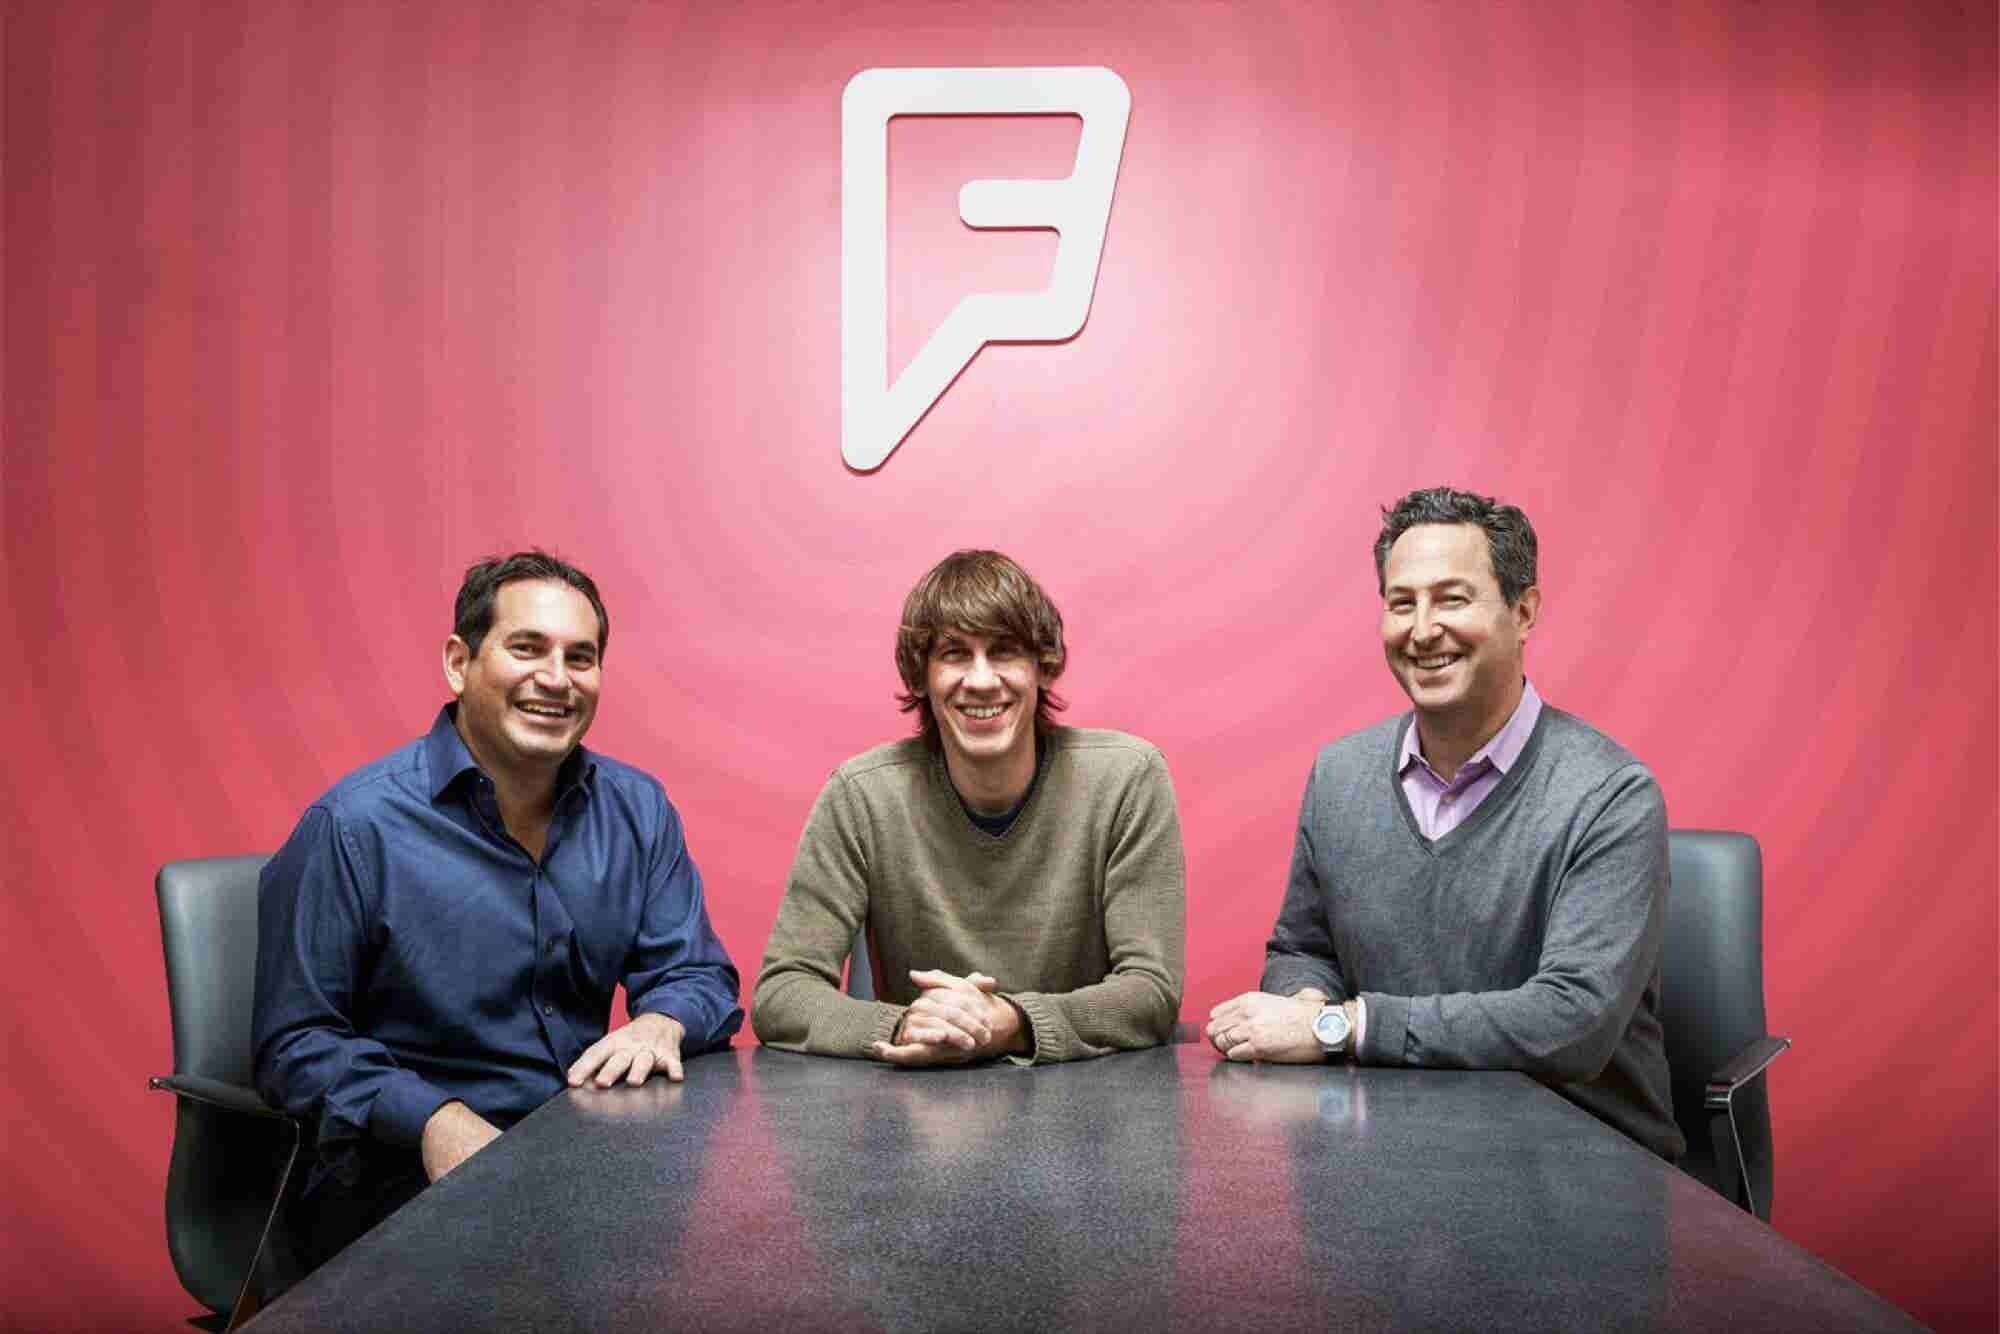 After Inventing the Check-in, Foursquare Pivots With Efforts to Sell i...